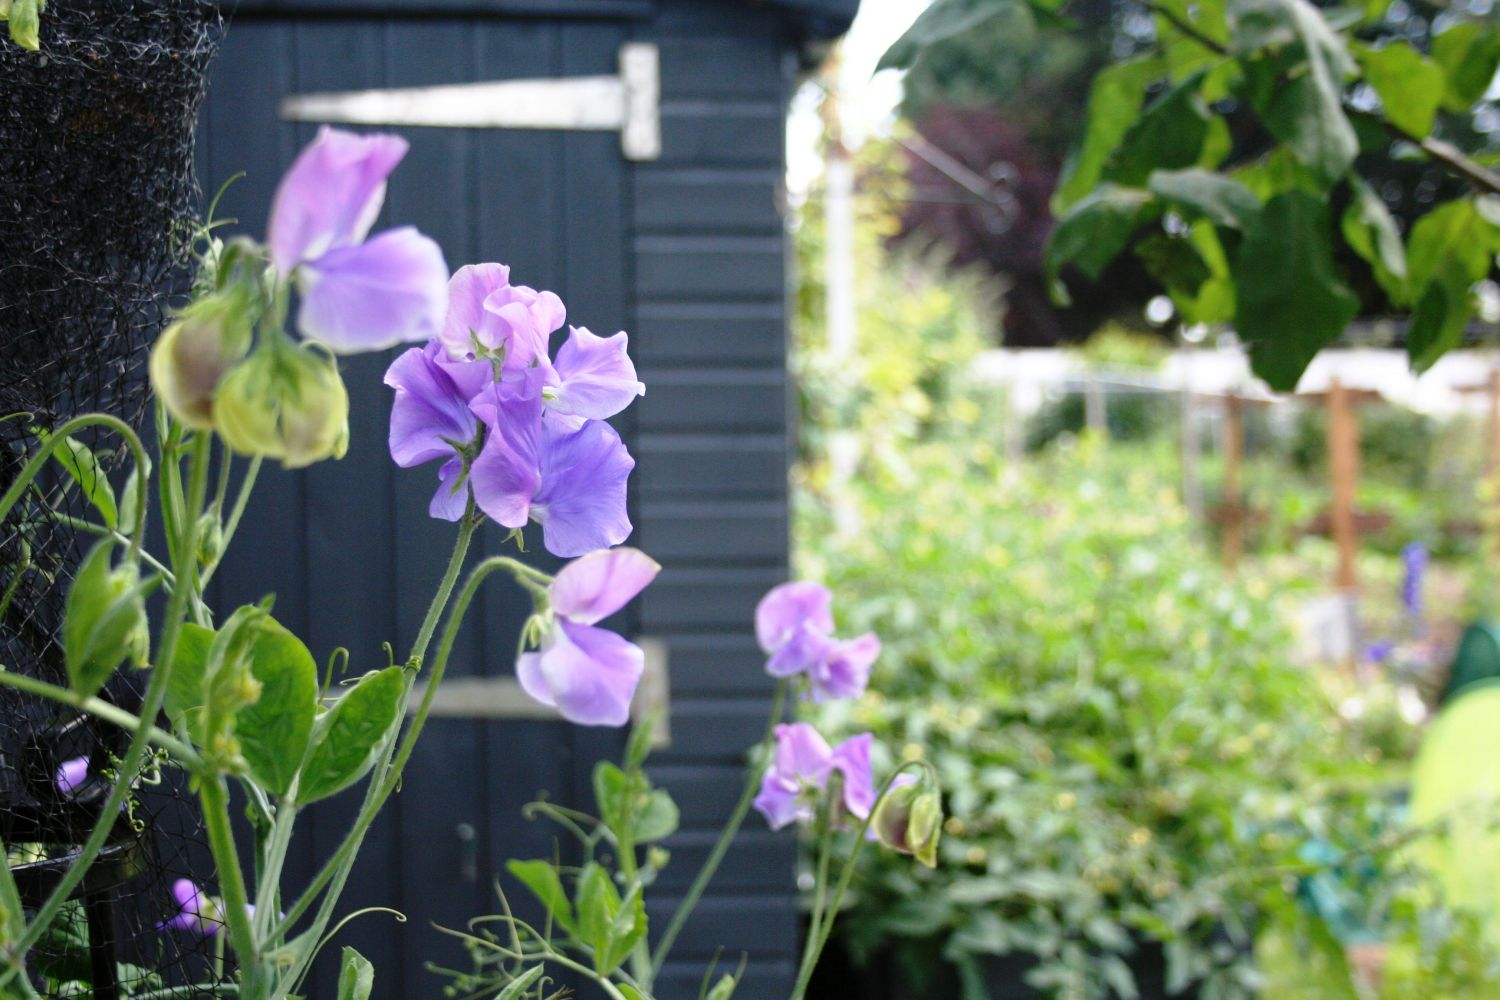 Sweetpeas on allotment. Shed in background